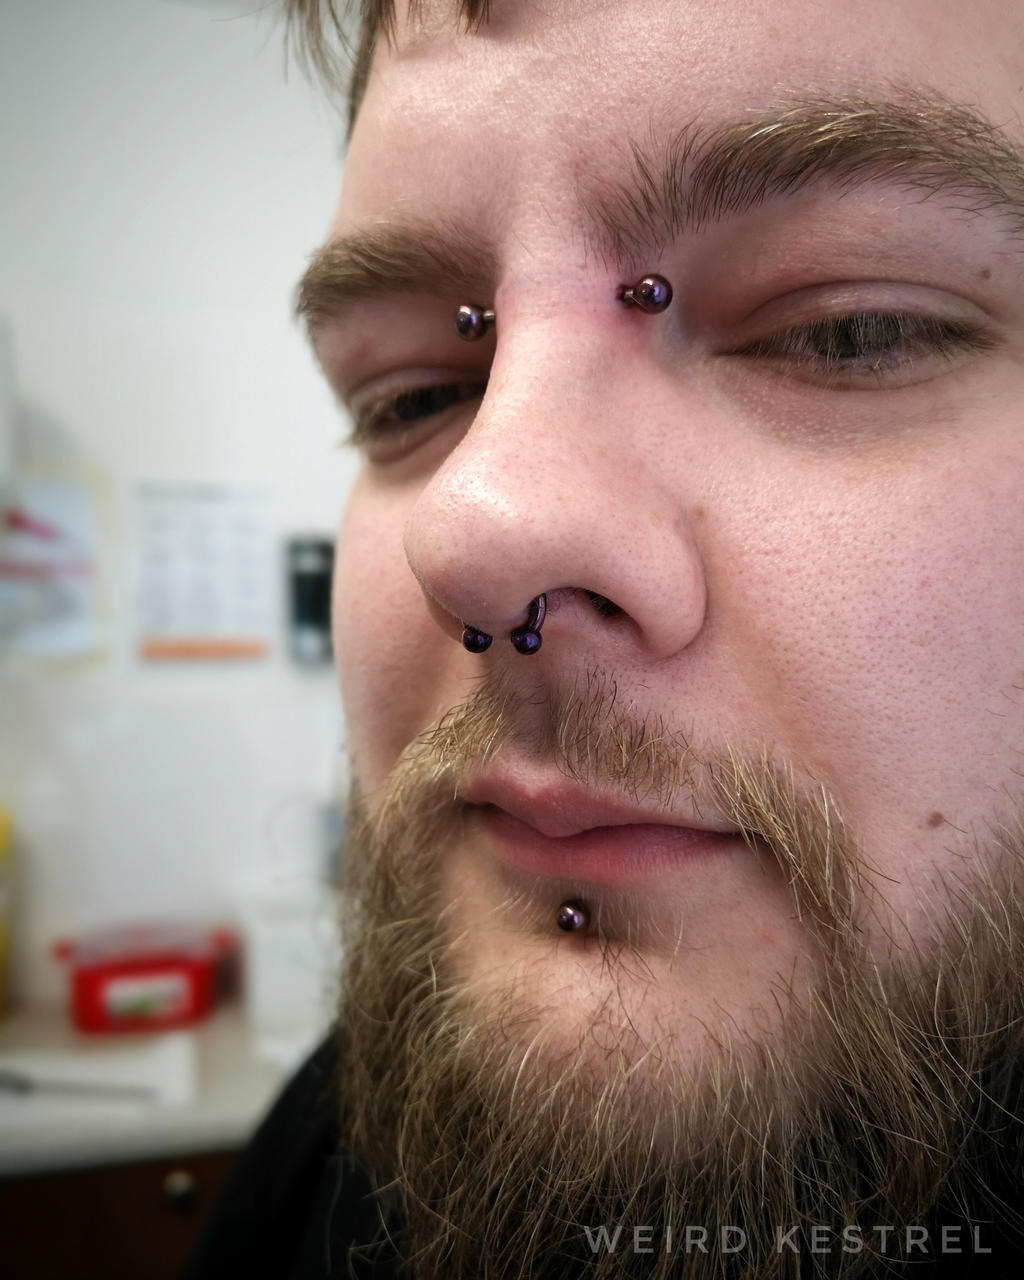 Bridge And Septum Piercing By Weirdkestrel On Deviantart